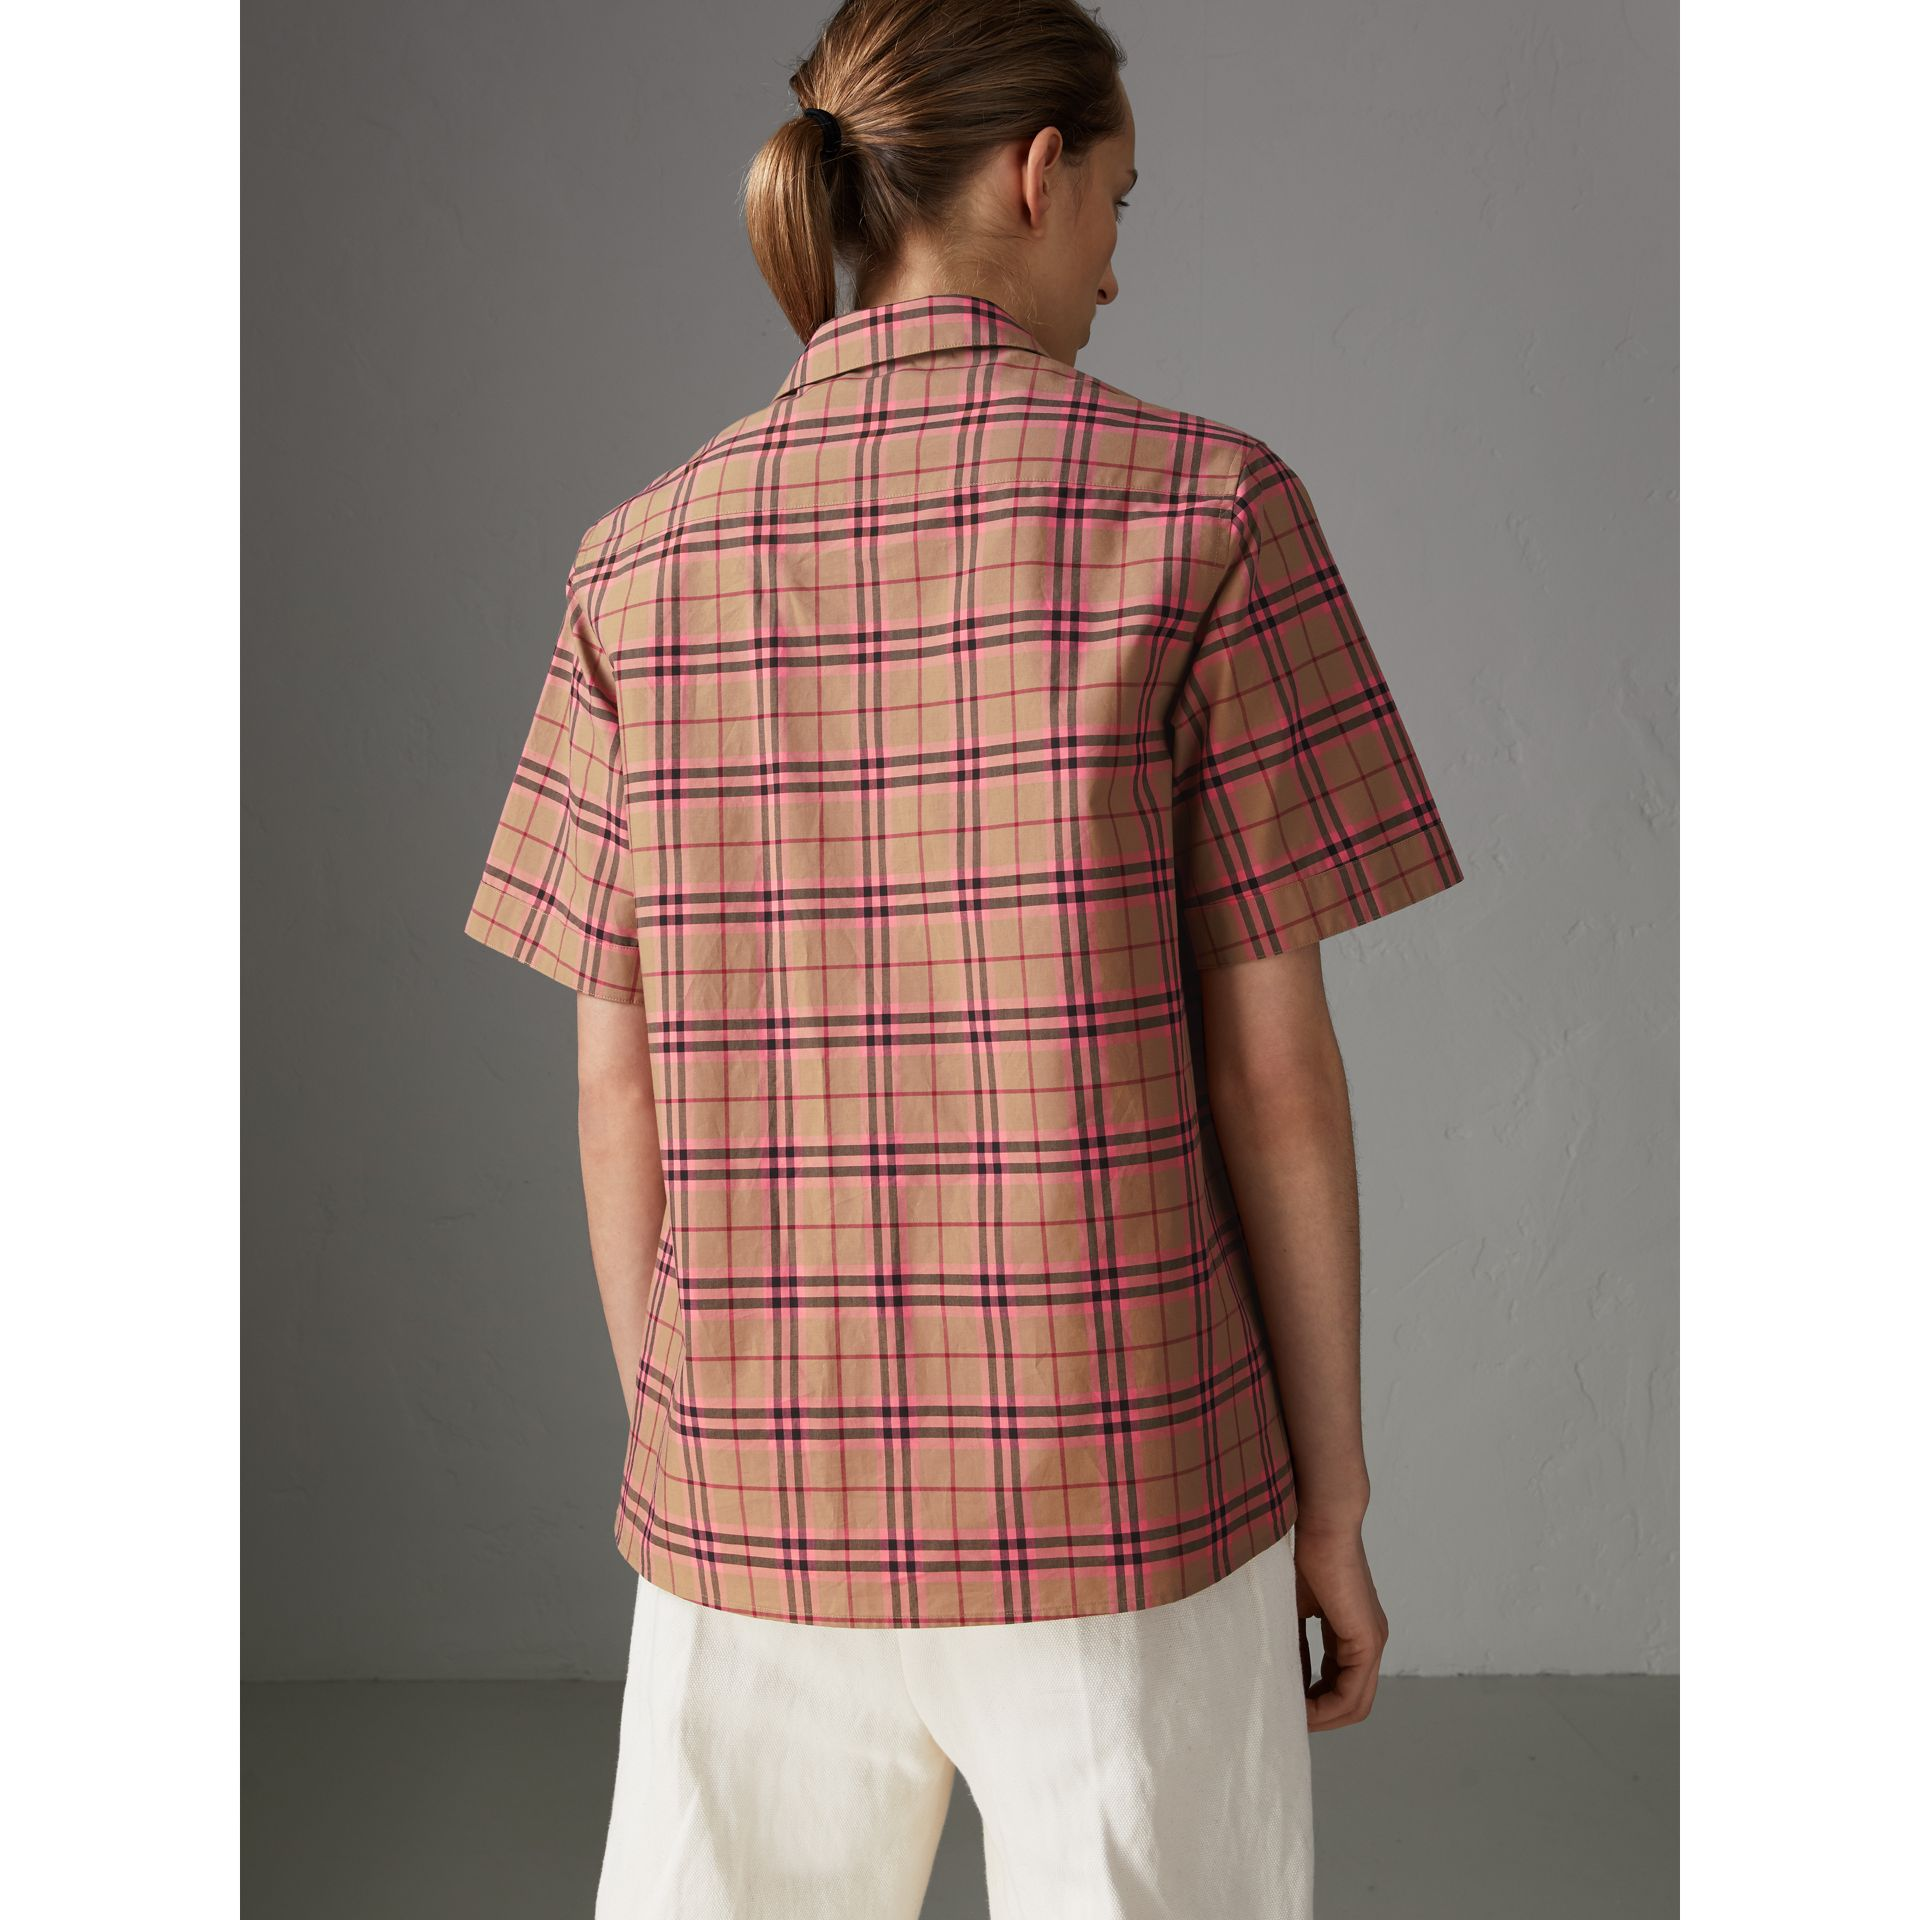 Check Cotton Short-sleeved Shirt in Pomegranate Pink - Women | Burberry Canada - gallery image 2